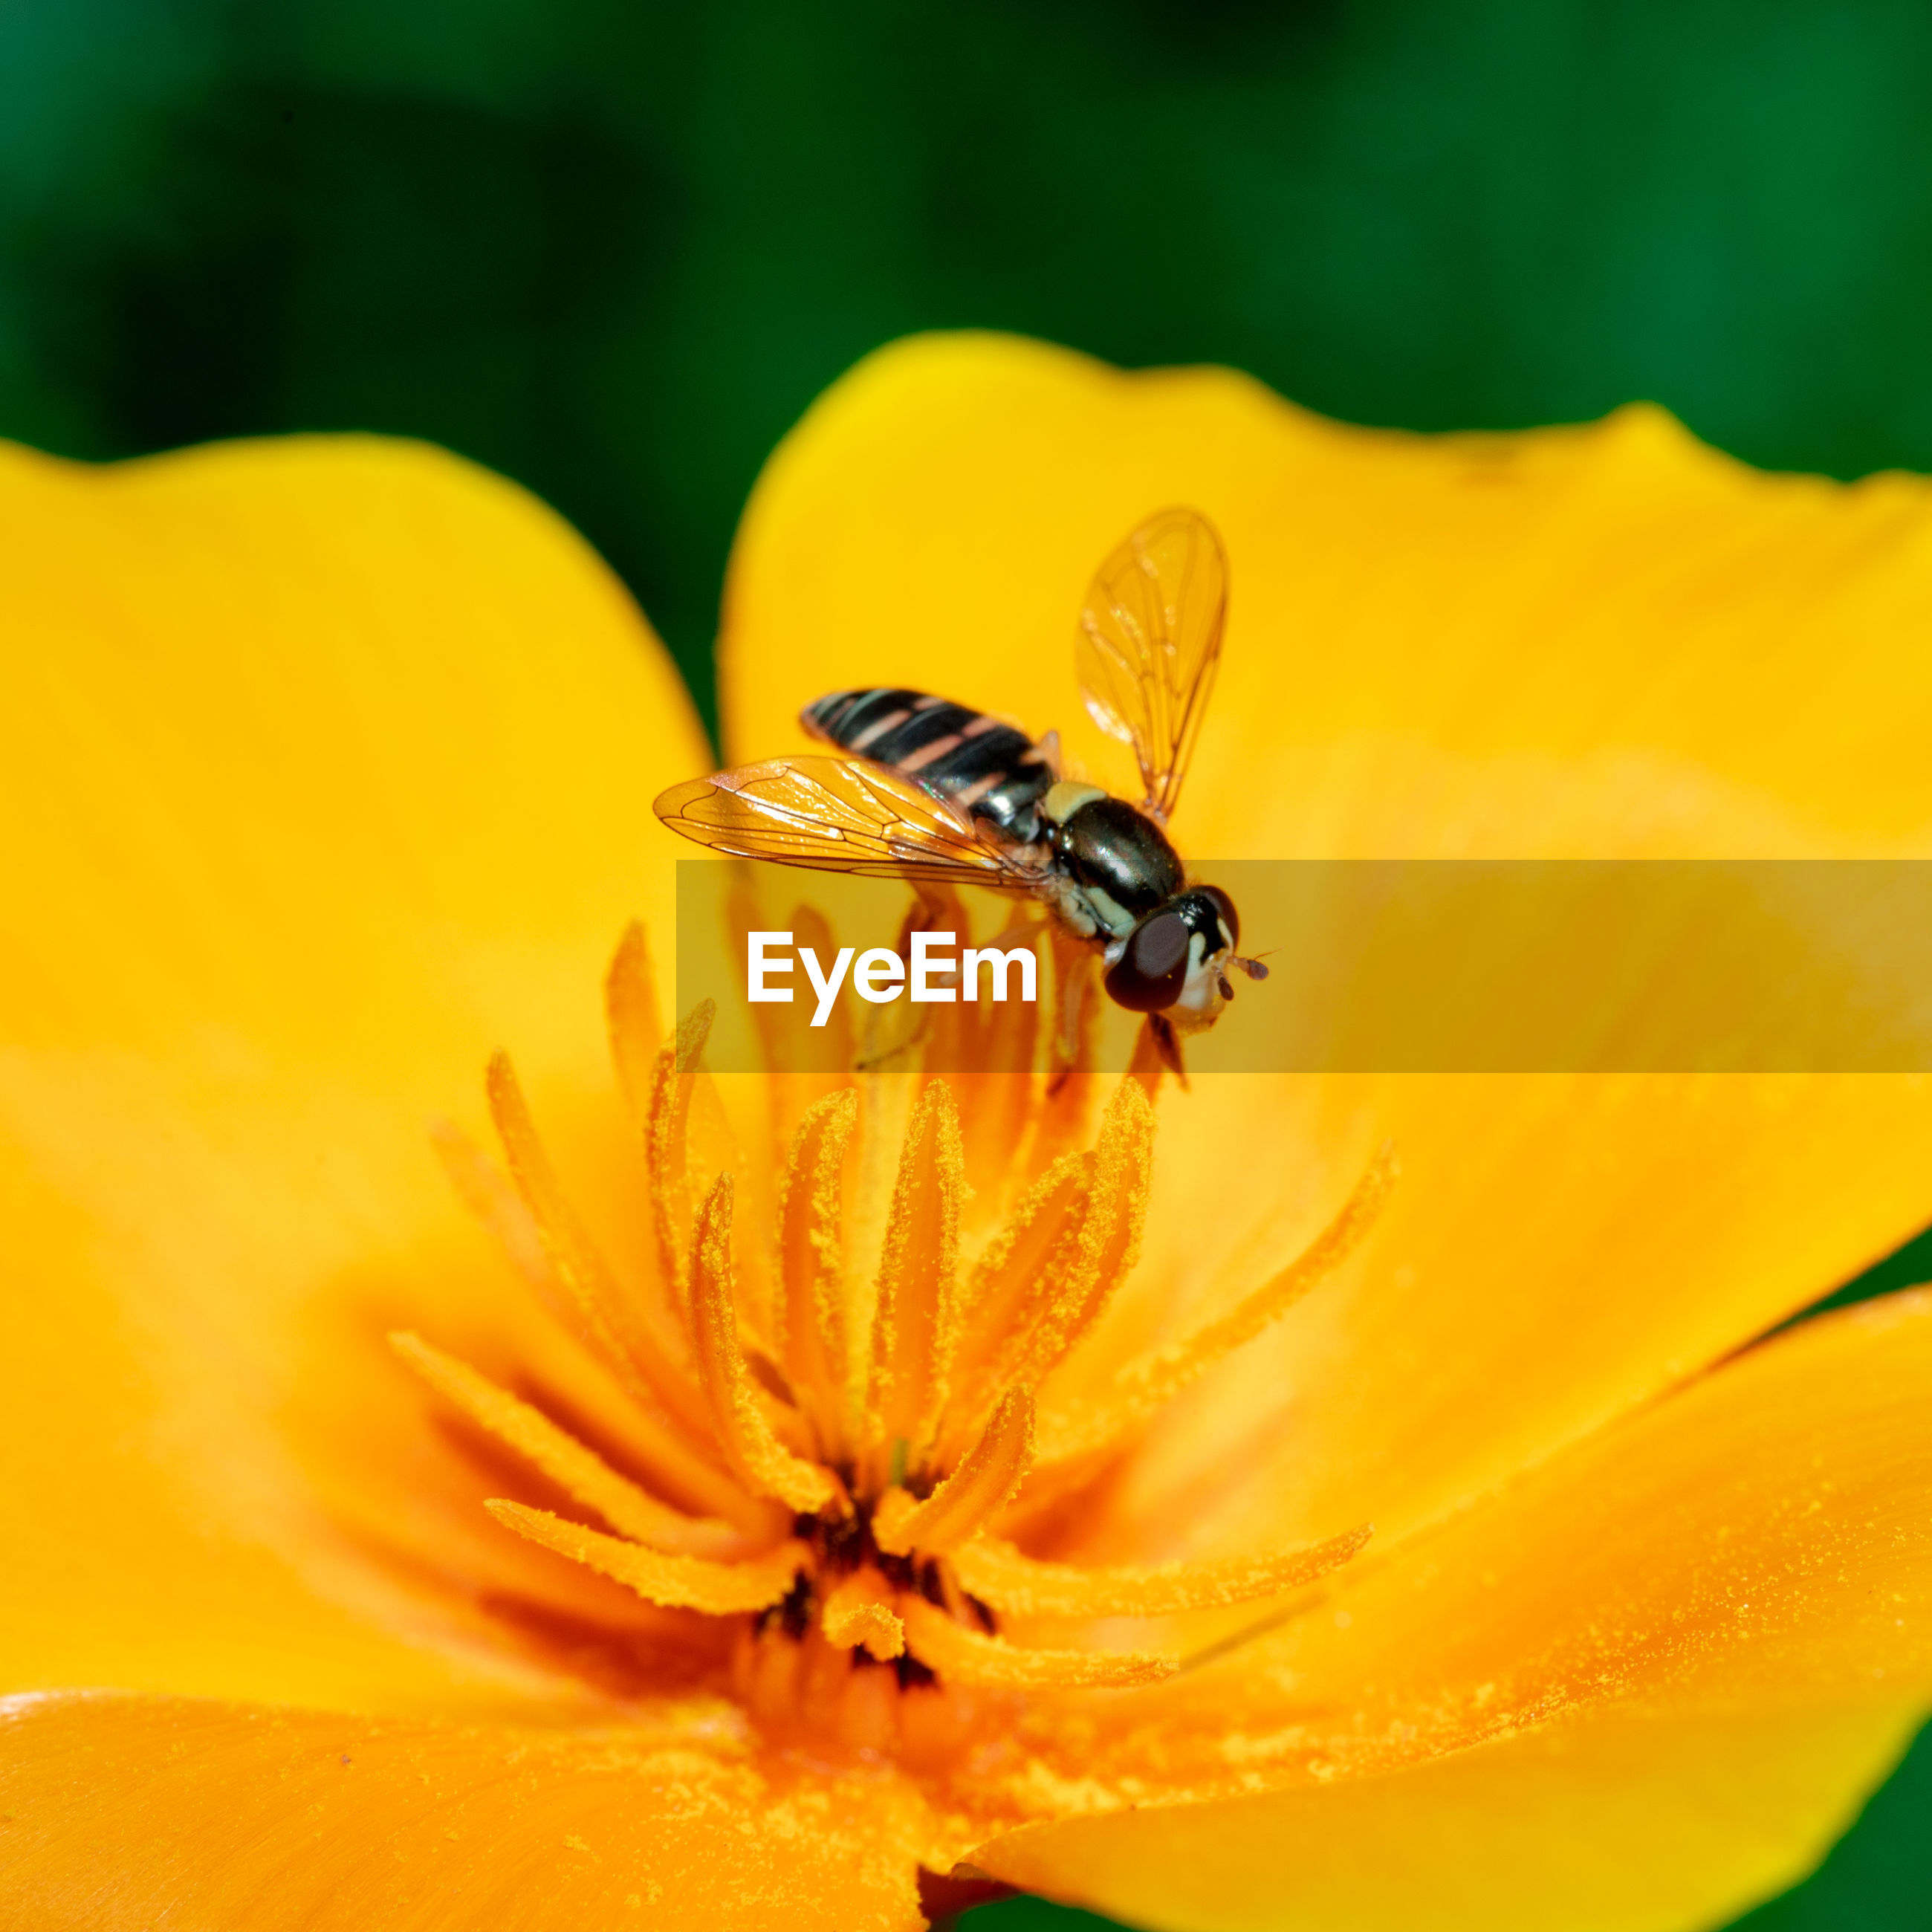 A syrphid fly on california poppy. syrphid flies feed on pollen and nectar.